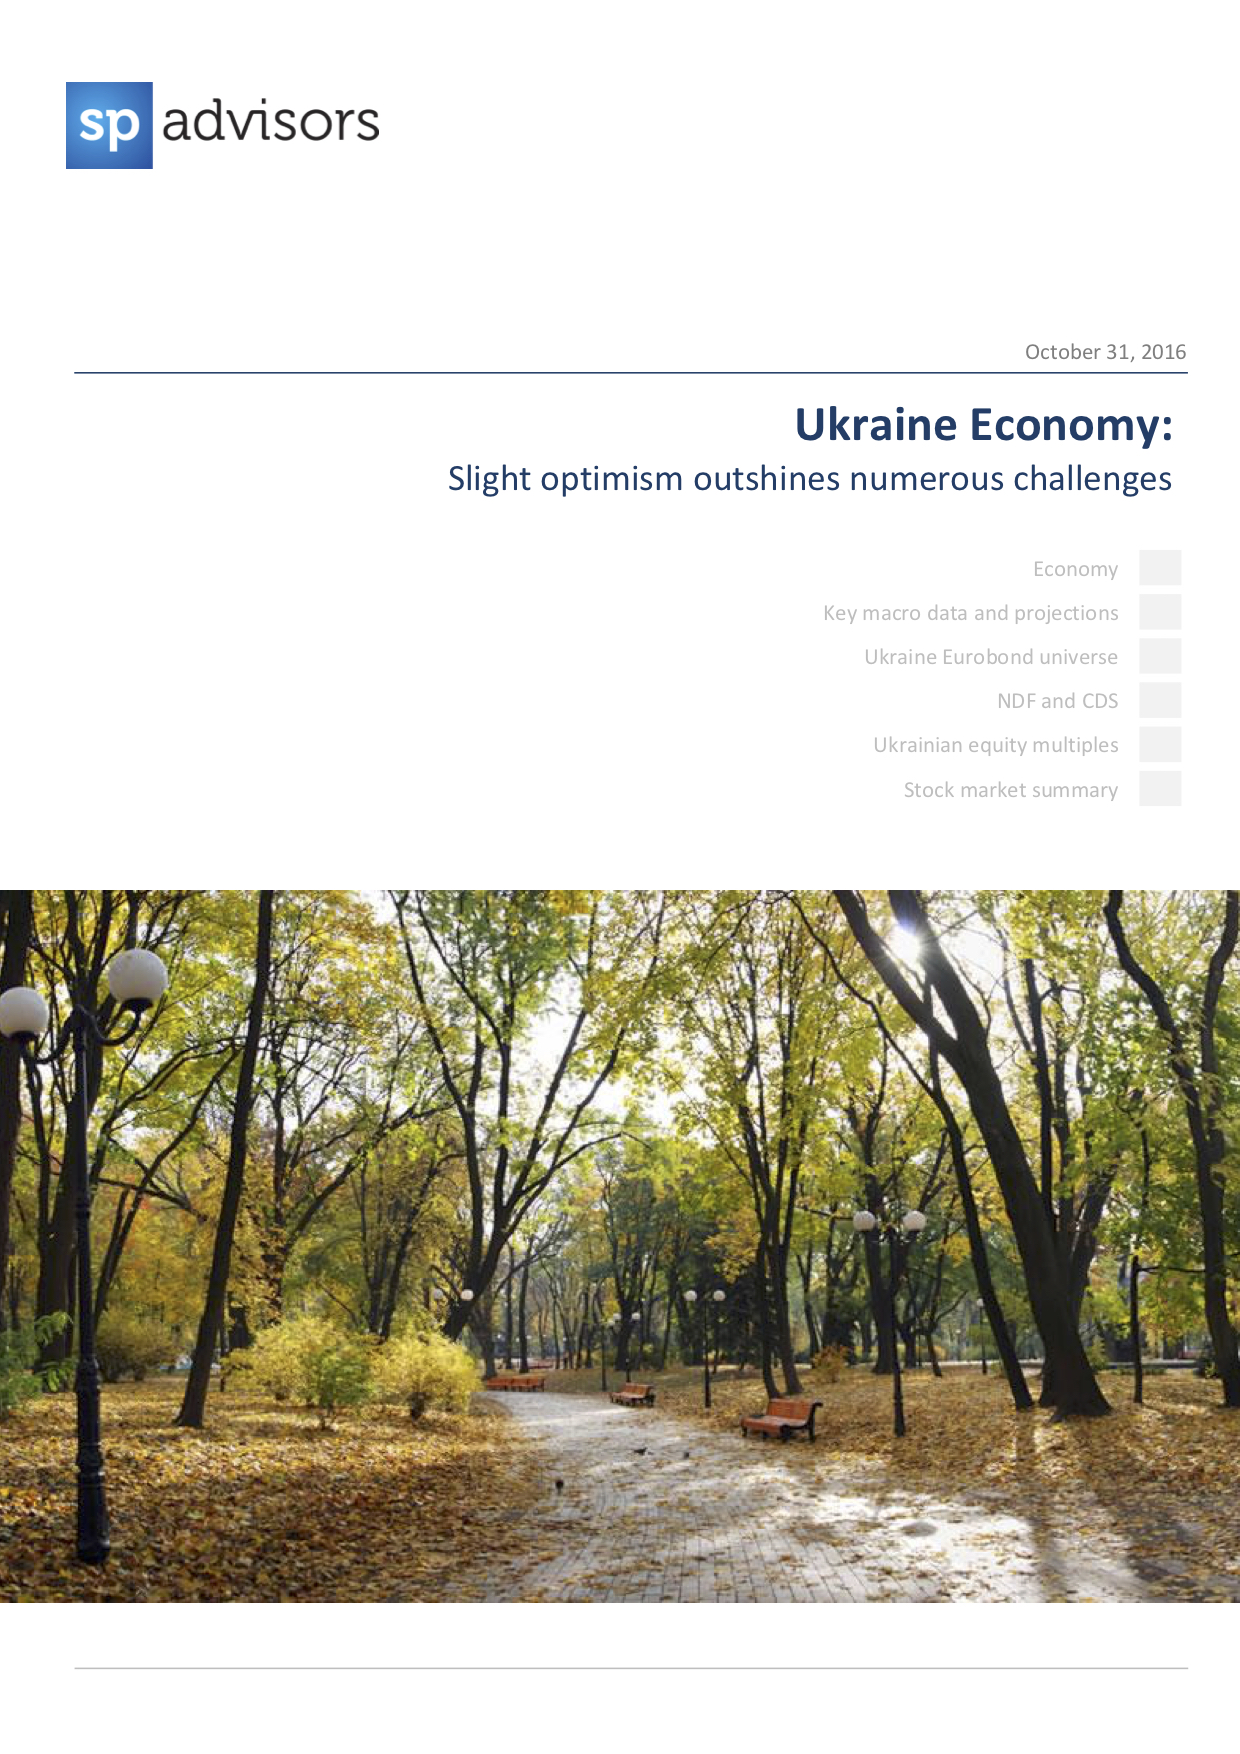 Ukraine Economy: Slight optimism outshines numerous challenges. October 31, 2016